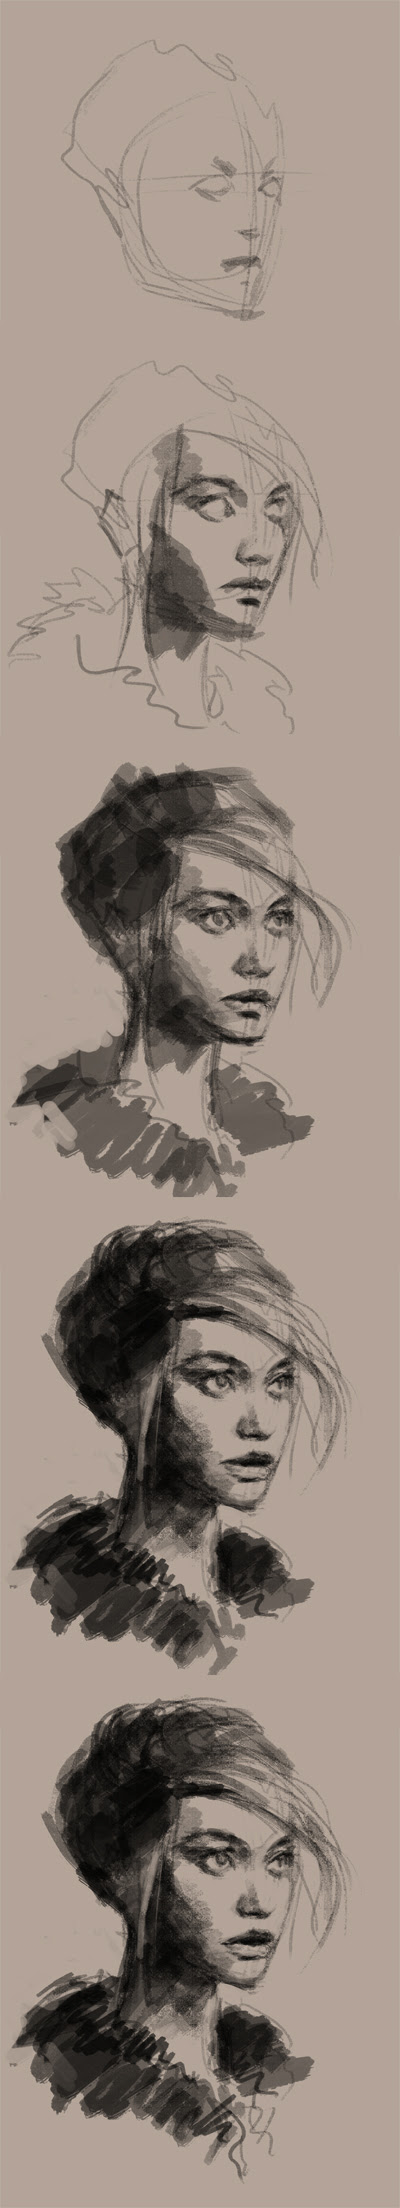 learn how to draw portrait